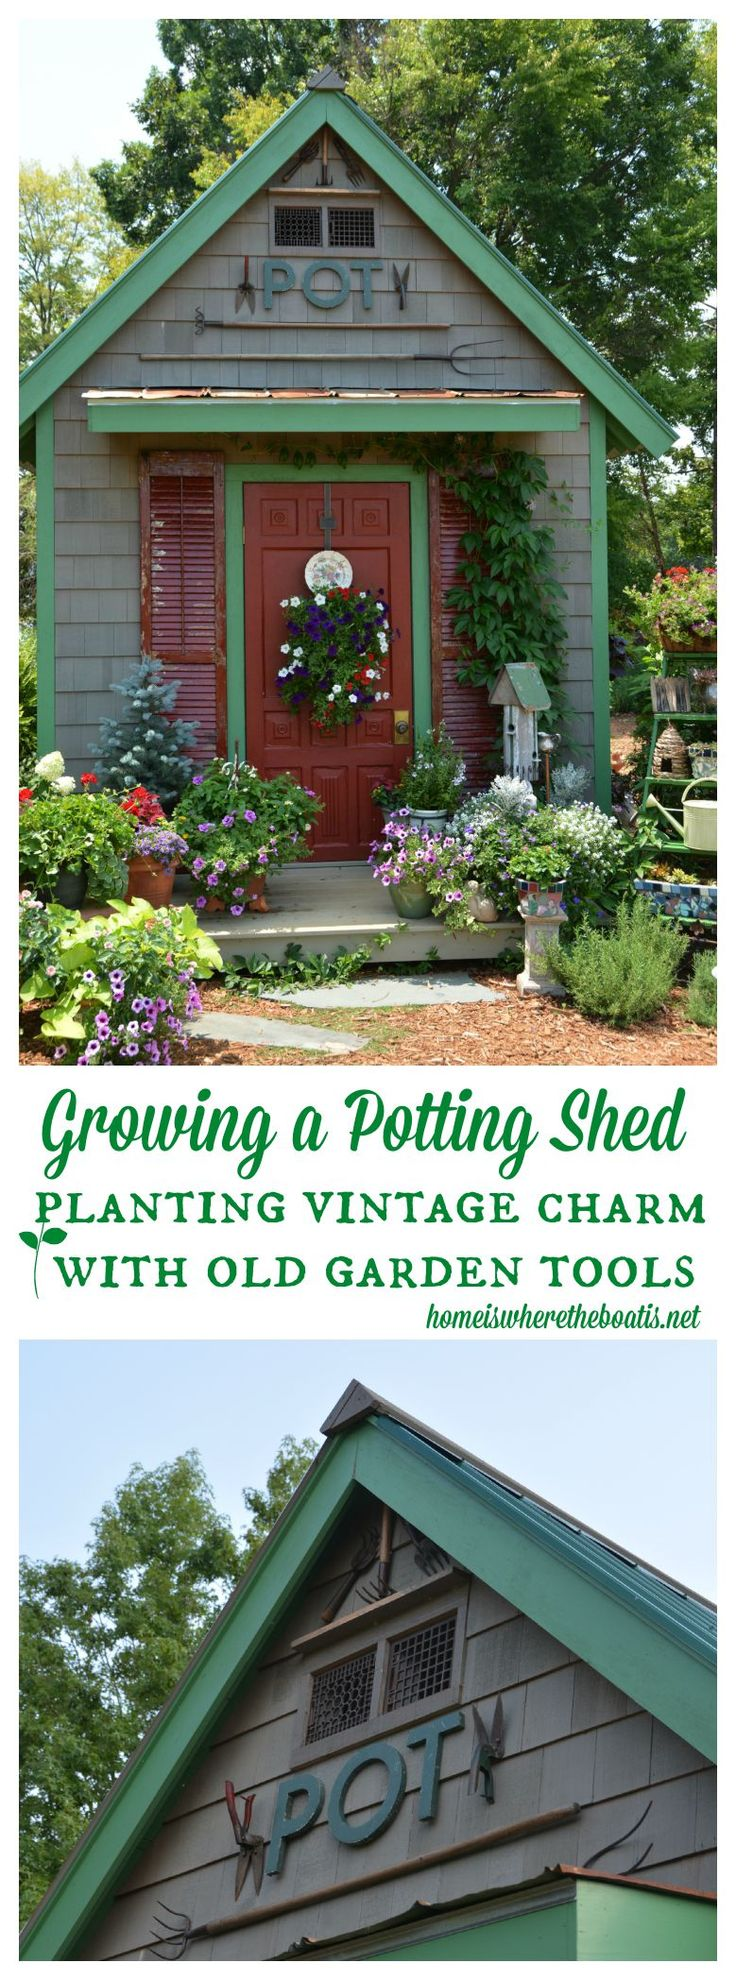 How a Potting Shed Grows: Planting vintage charm with old garden tools! | homeiswheretheboatis.net #pottingshed #garden